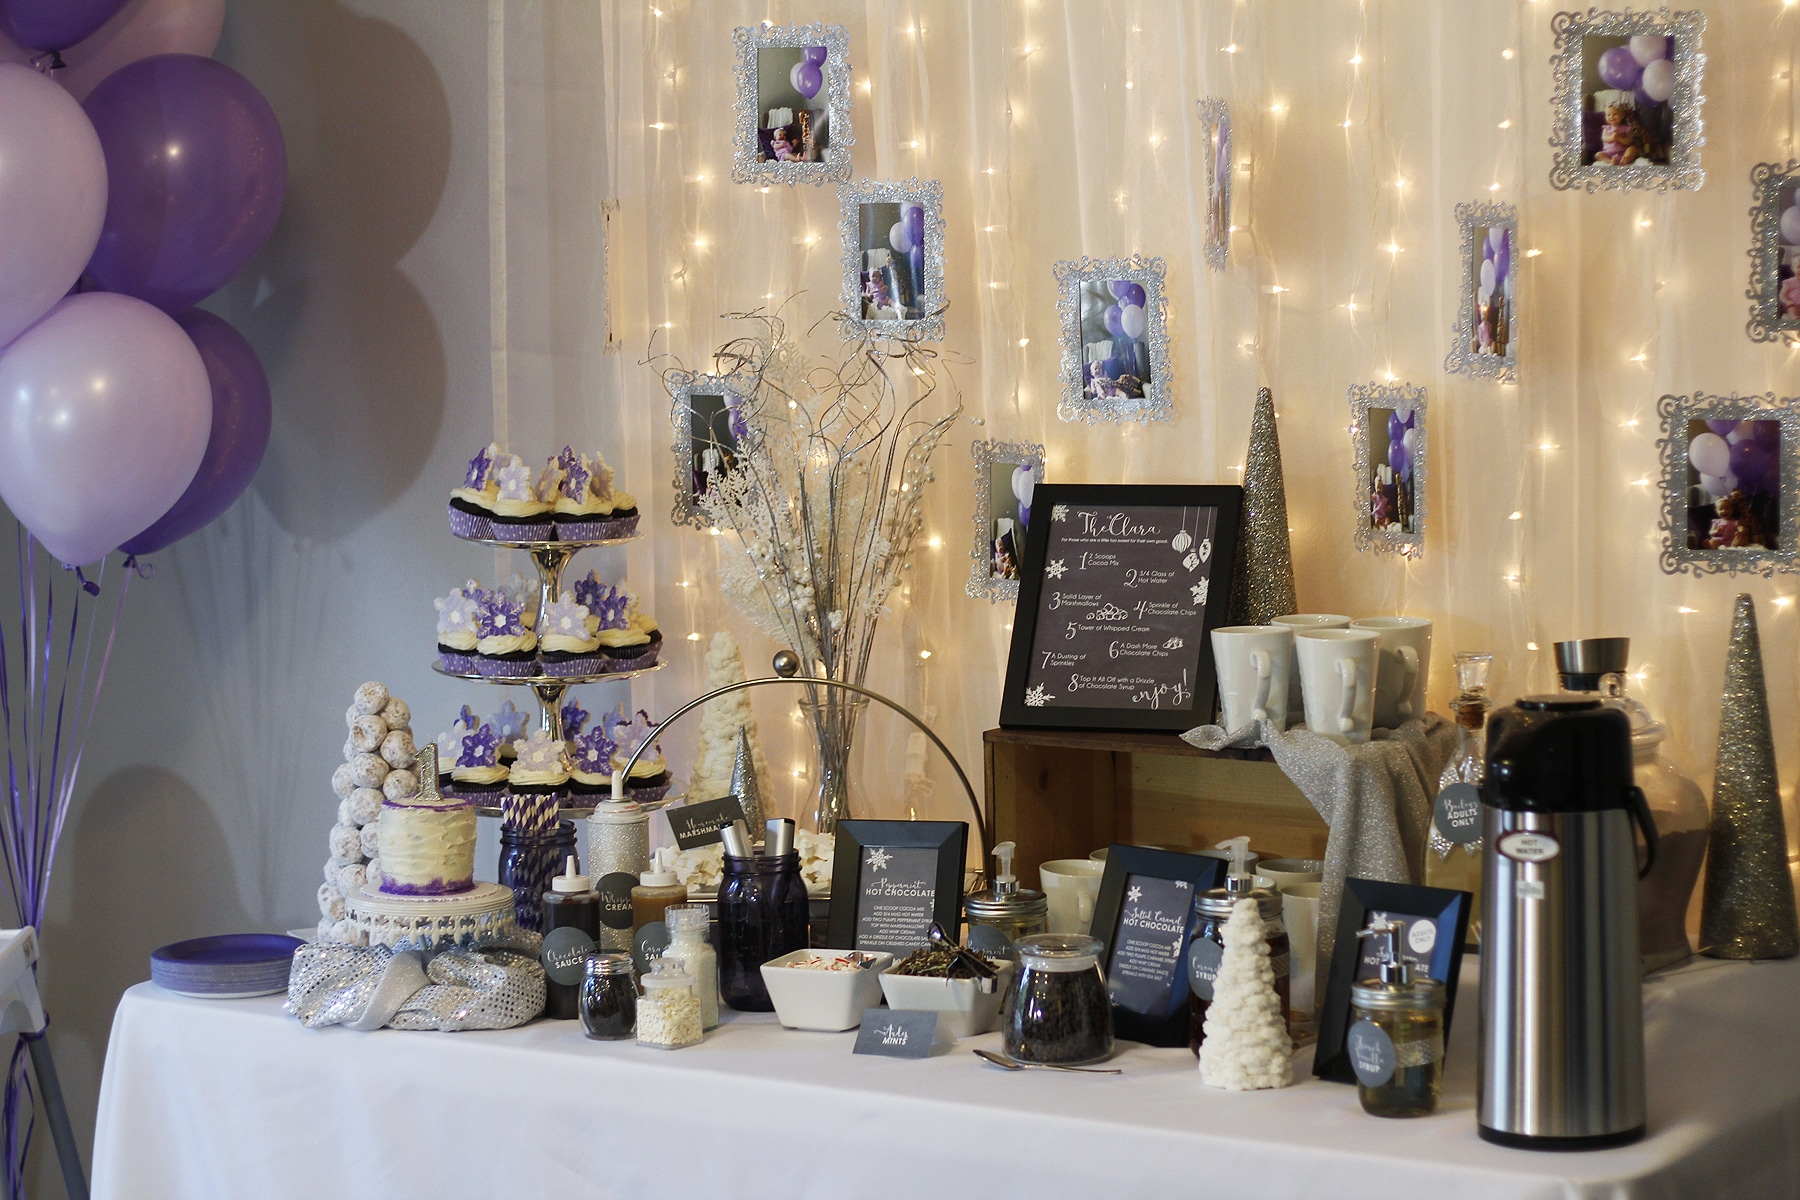 Winter Wonderland Hot Chocolate Bar with DIY frames hung over twinkly lights image.